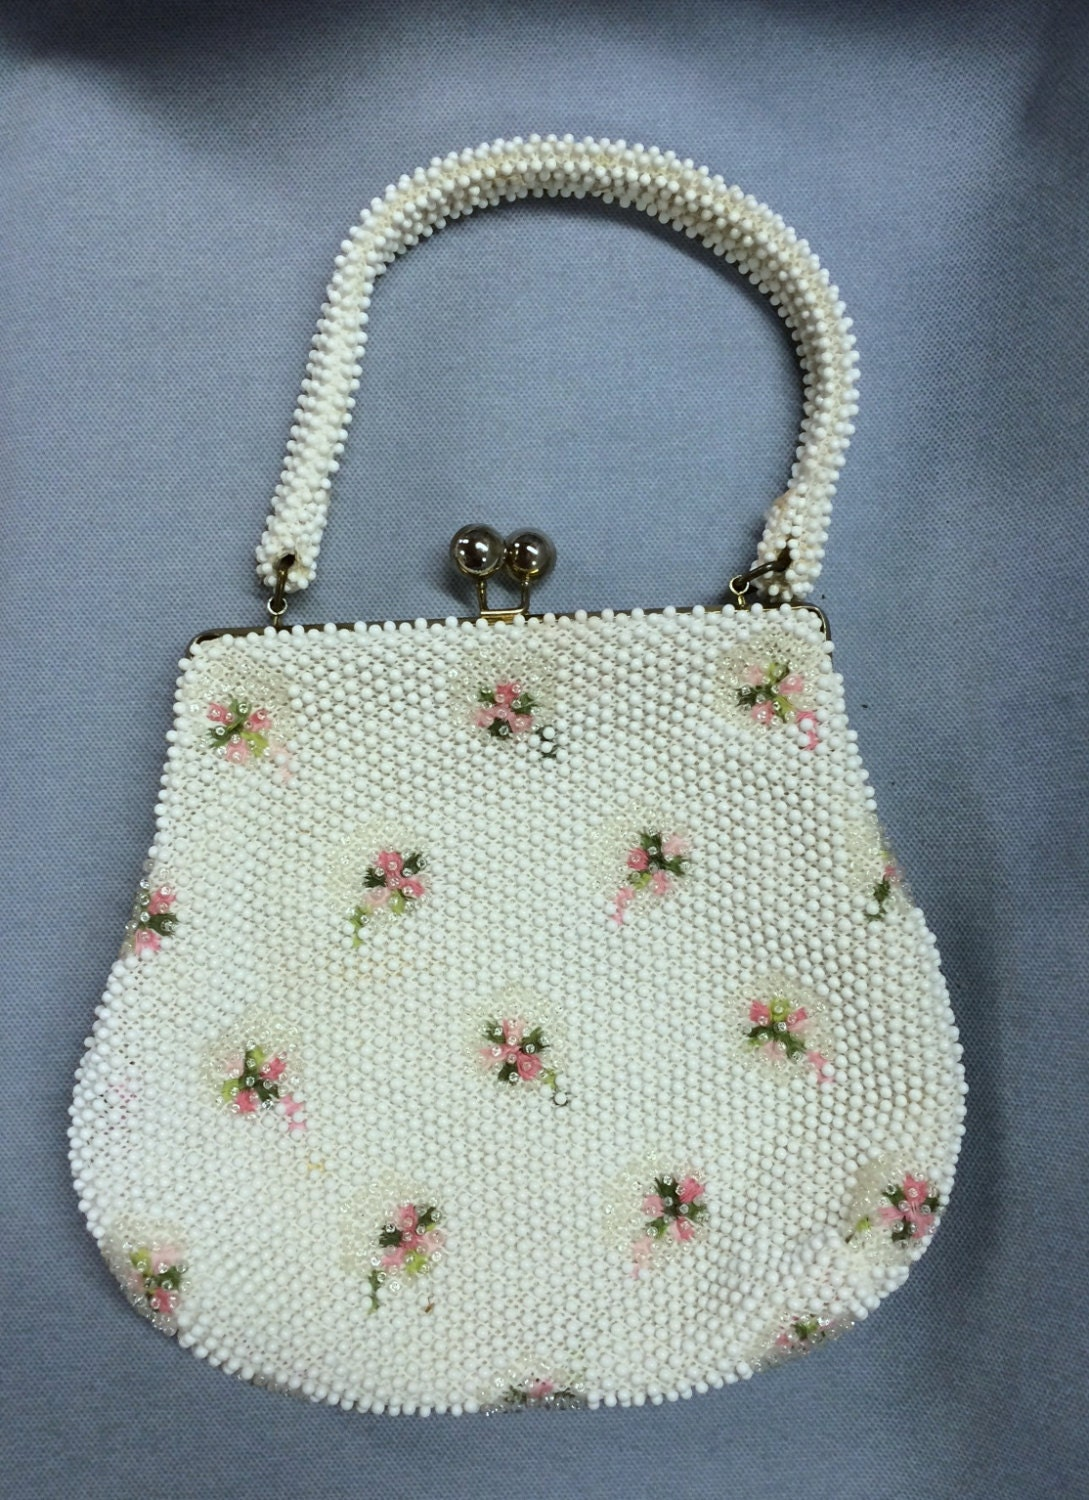 Vintage beaded purse with embroidered rose buds